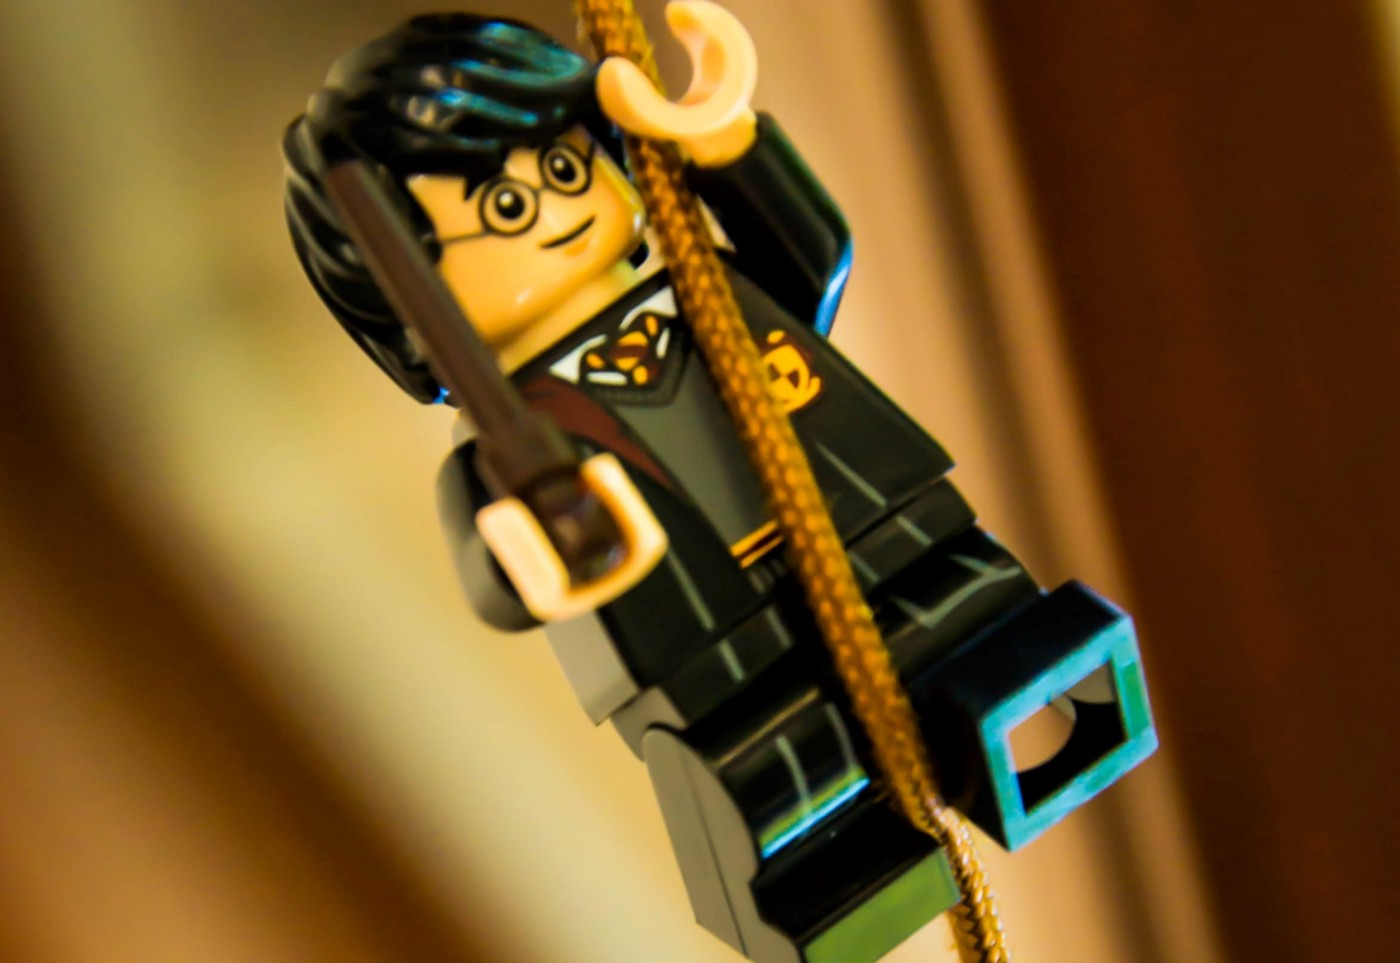 Harry Potter Lego in a rope. 2 Simple Story Structure You May Use to Write Your First Novel 15 Easy beats and 14 signposts plus publishing industry data, pages, words count, and percentages